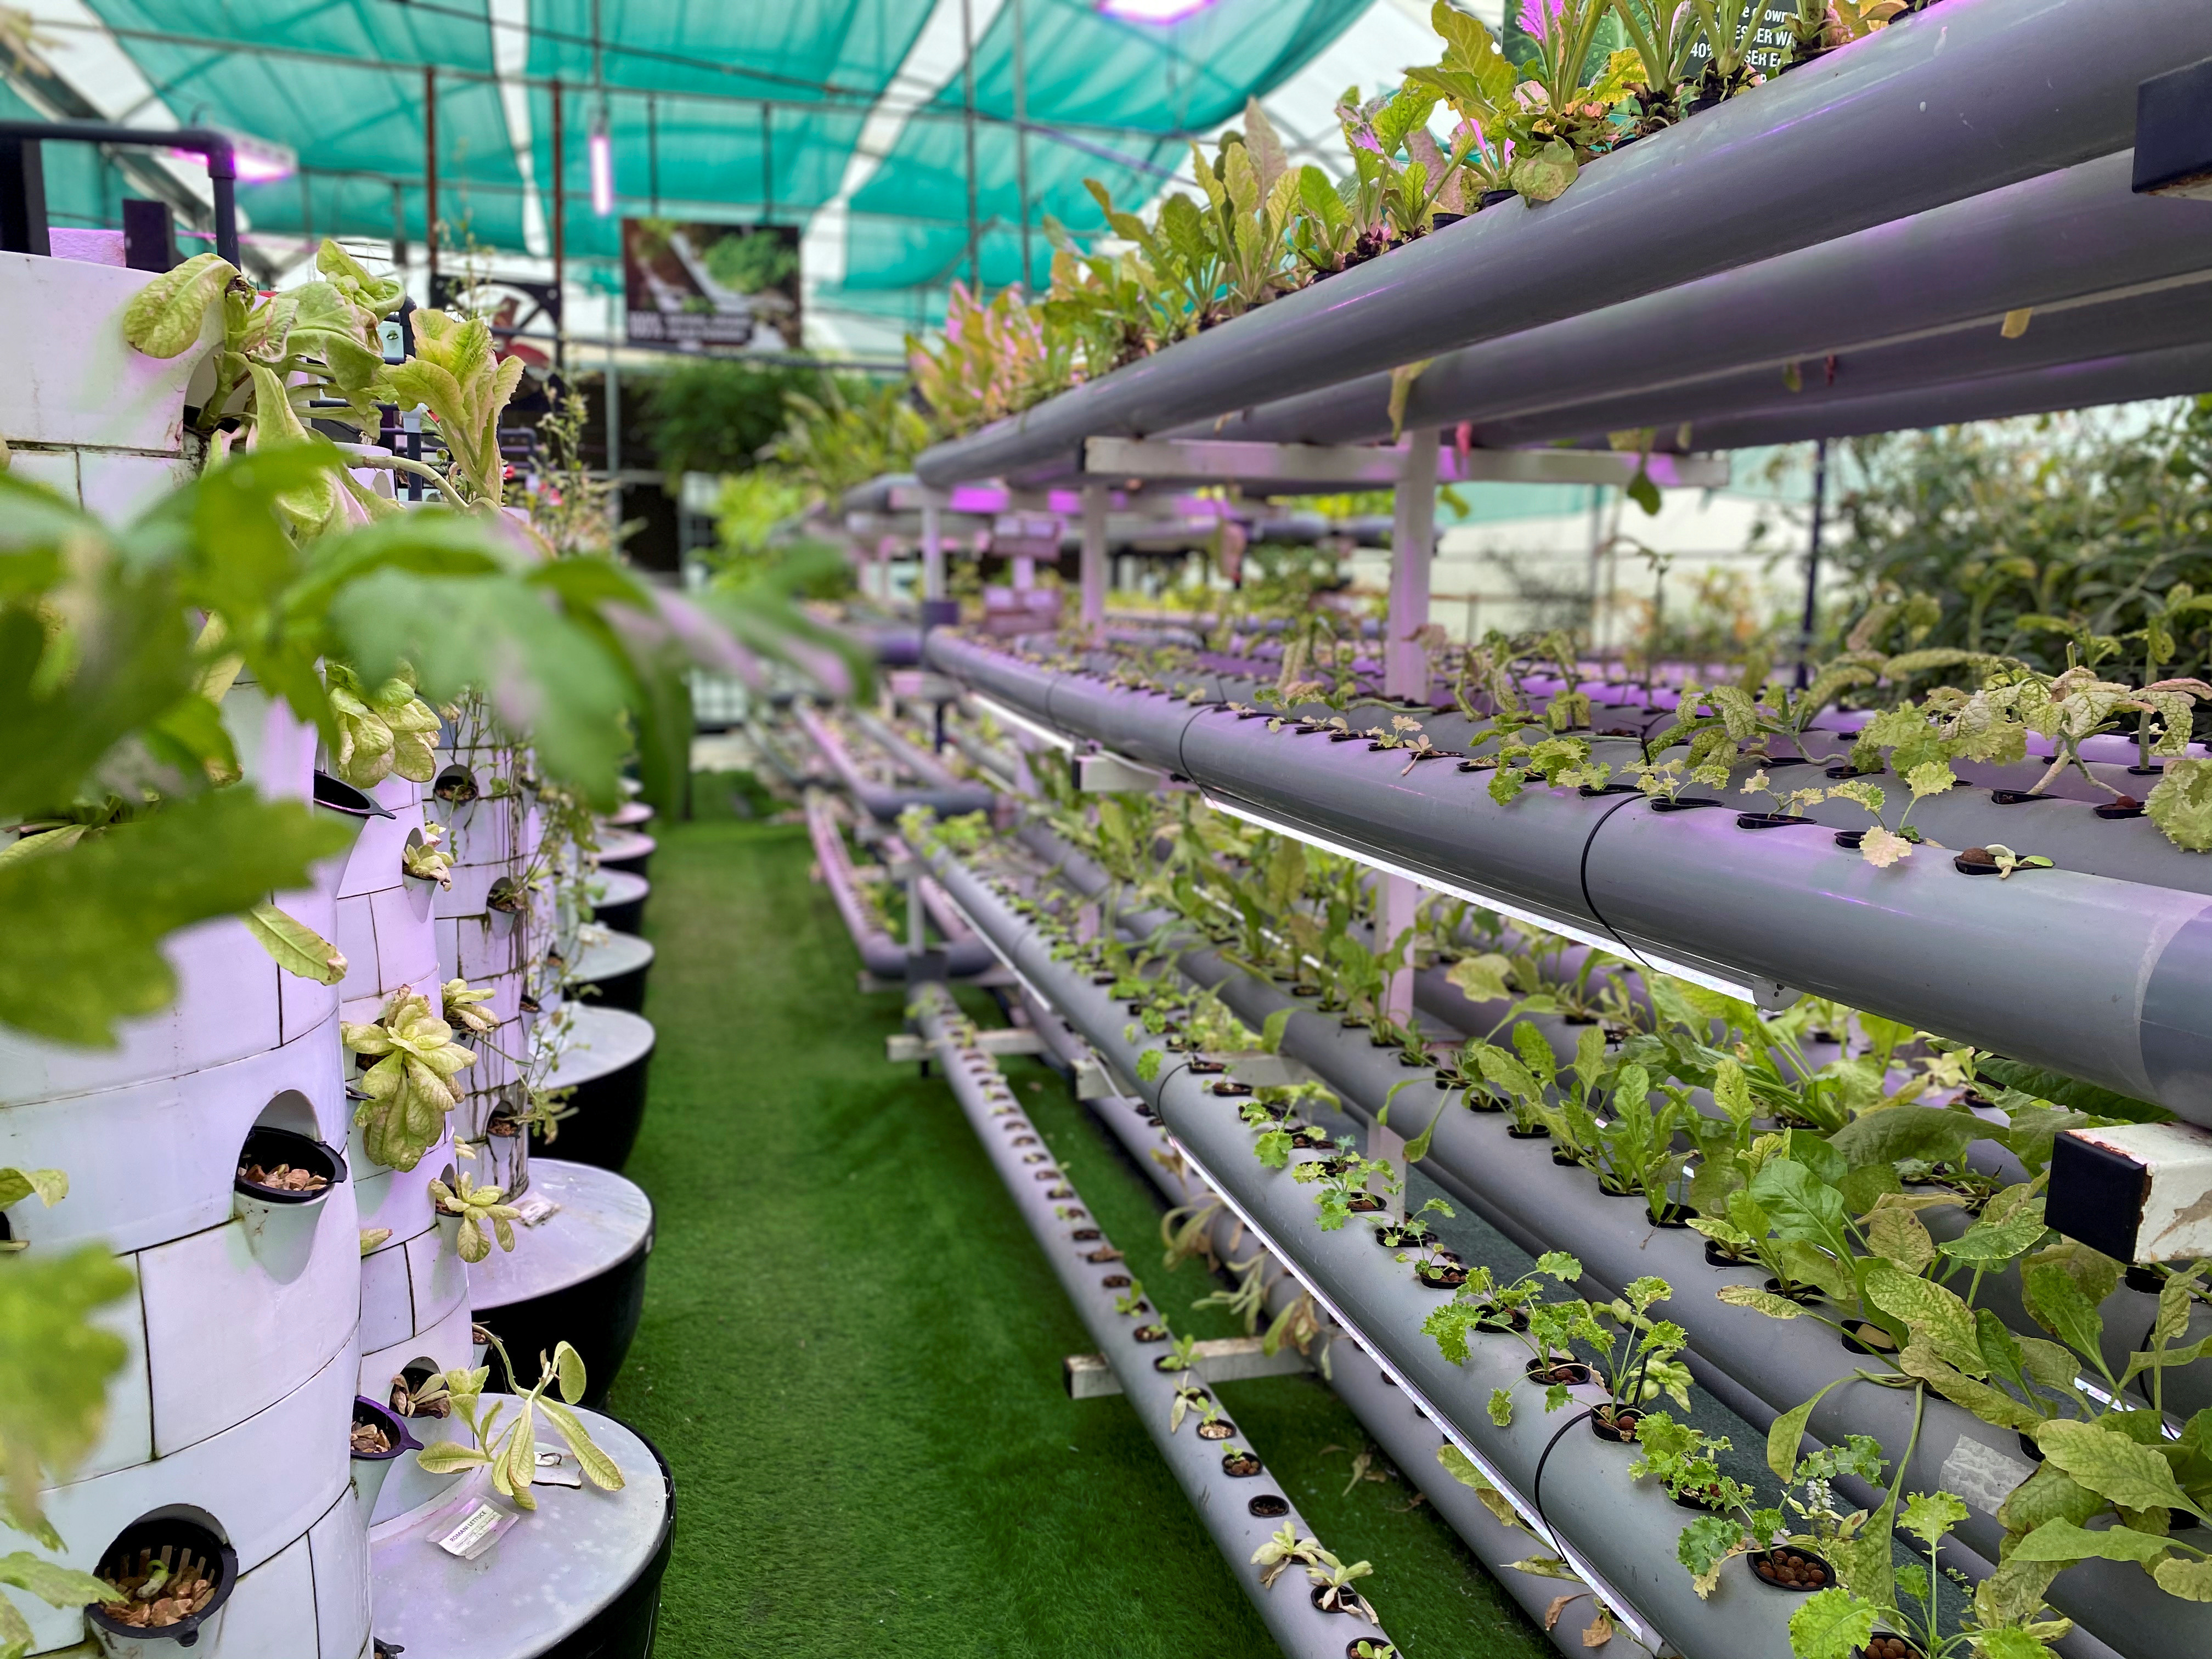 General view of a high tech vertical farm where local farmers have a chance to cultivate their crops